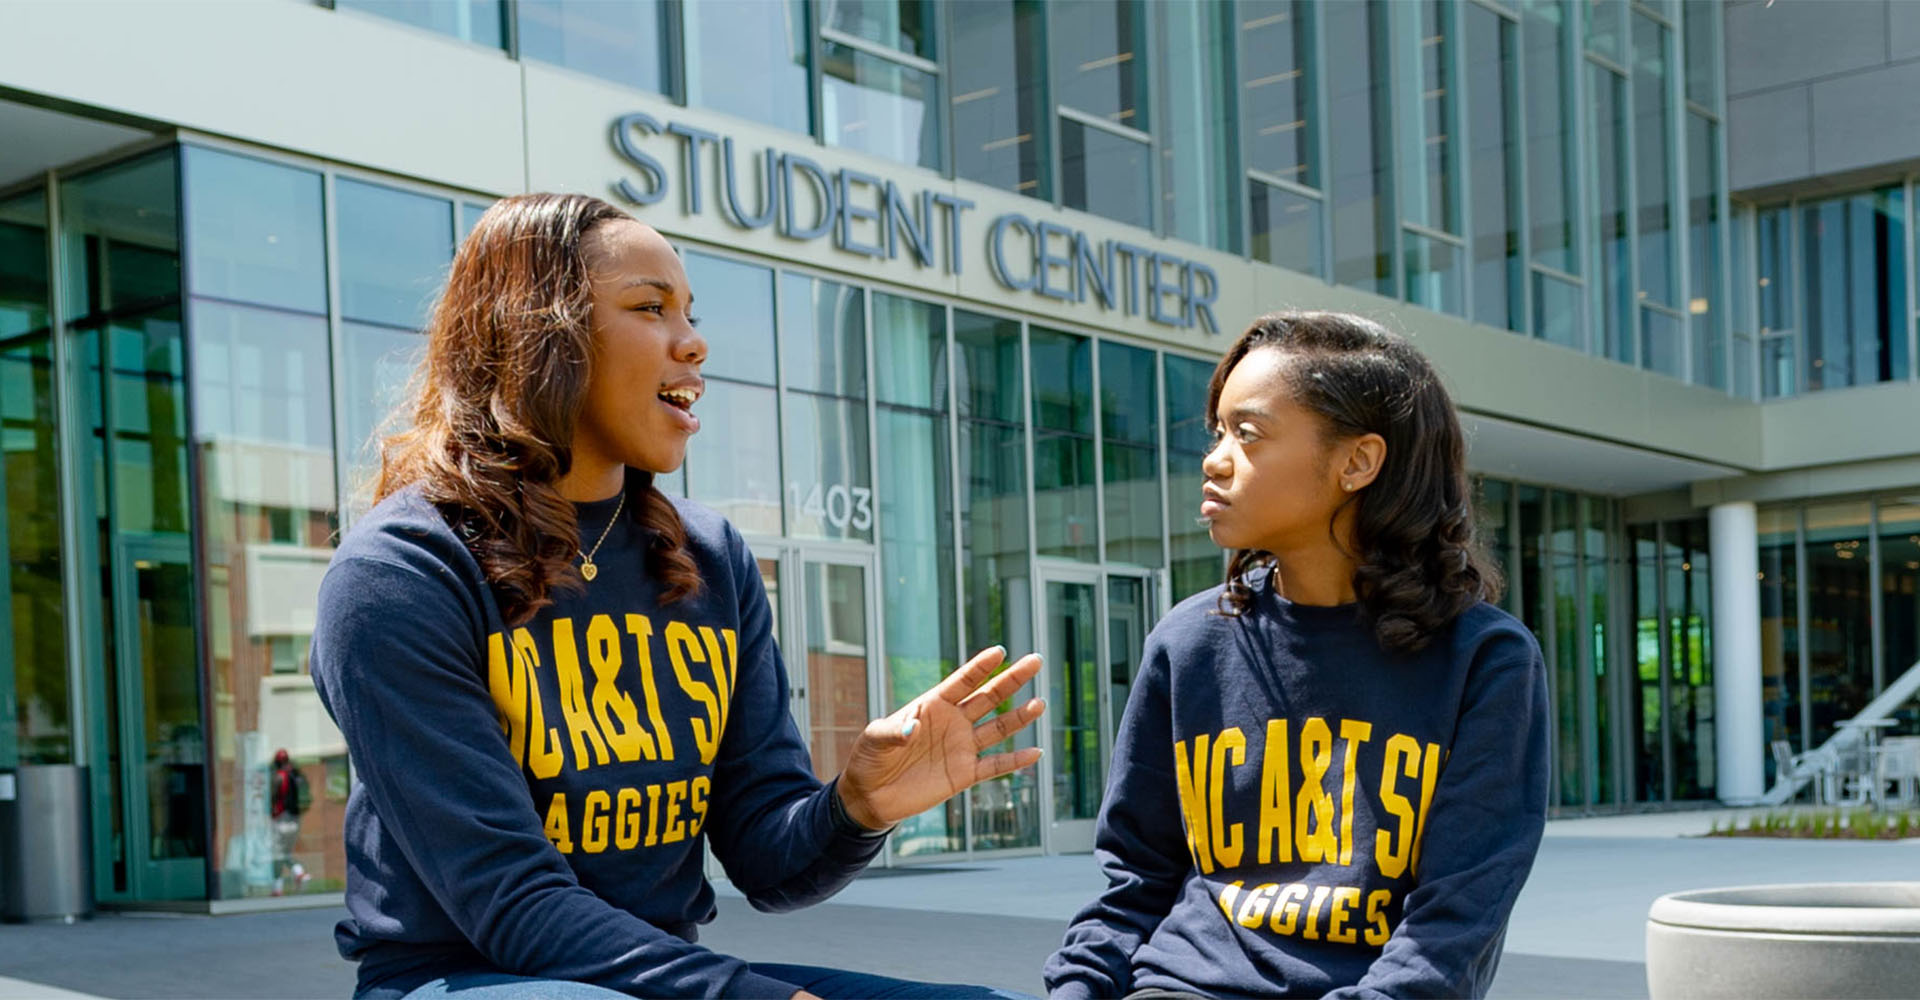 Students in front of Student Center